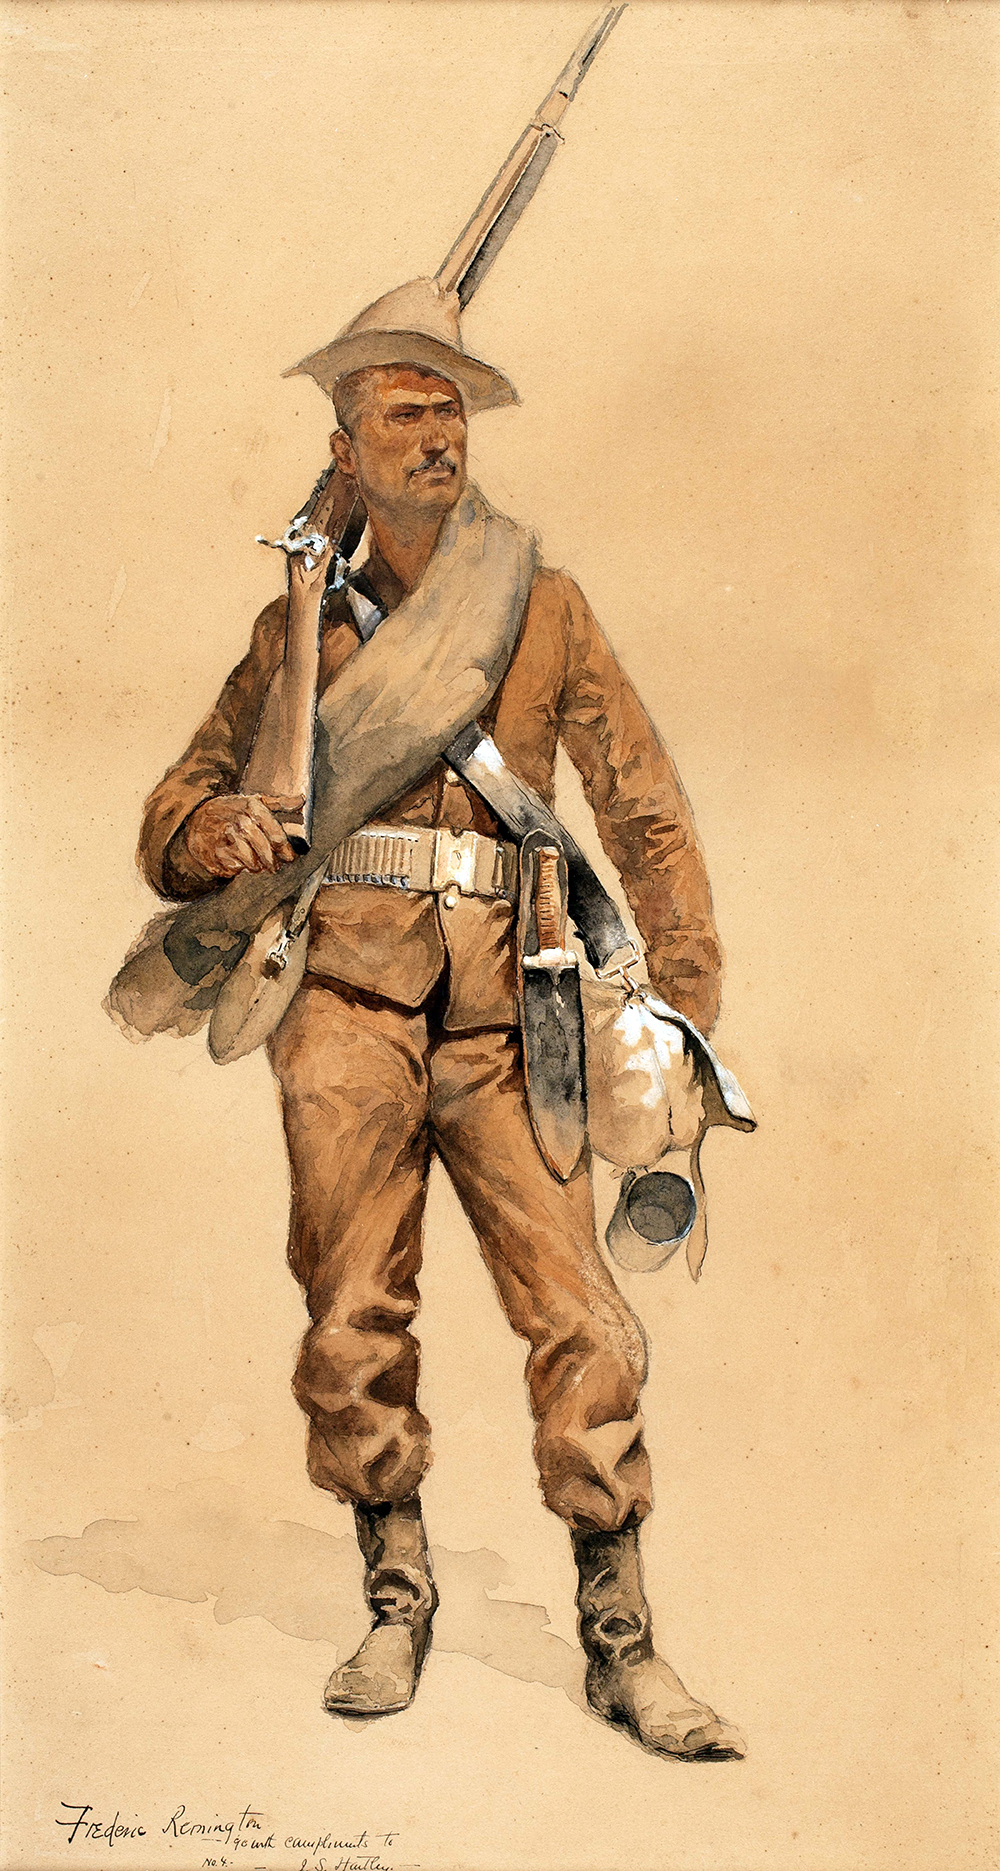 Remington,Frederic,Infantryman in Field Costume,1952.16